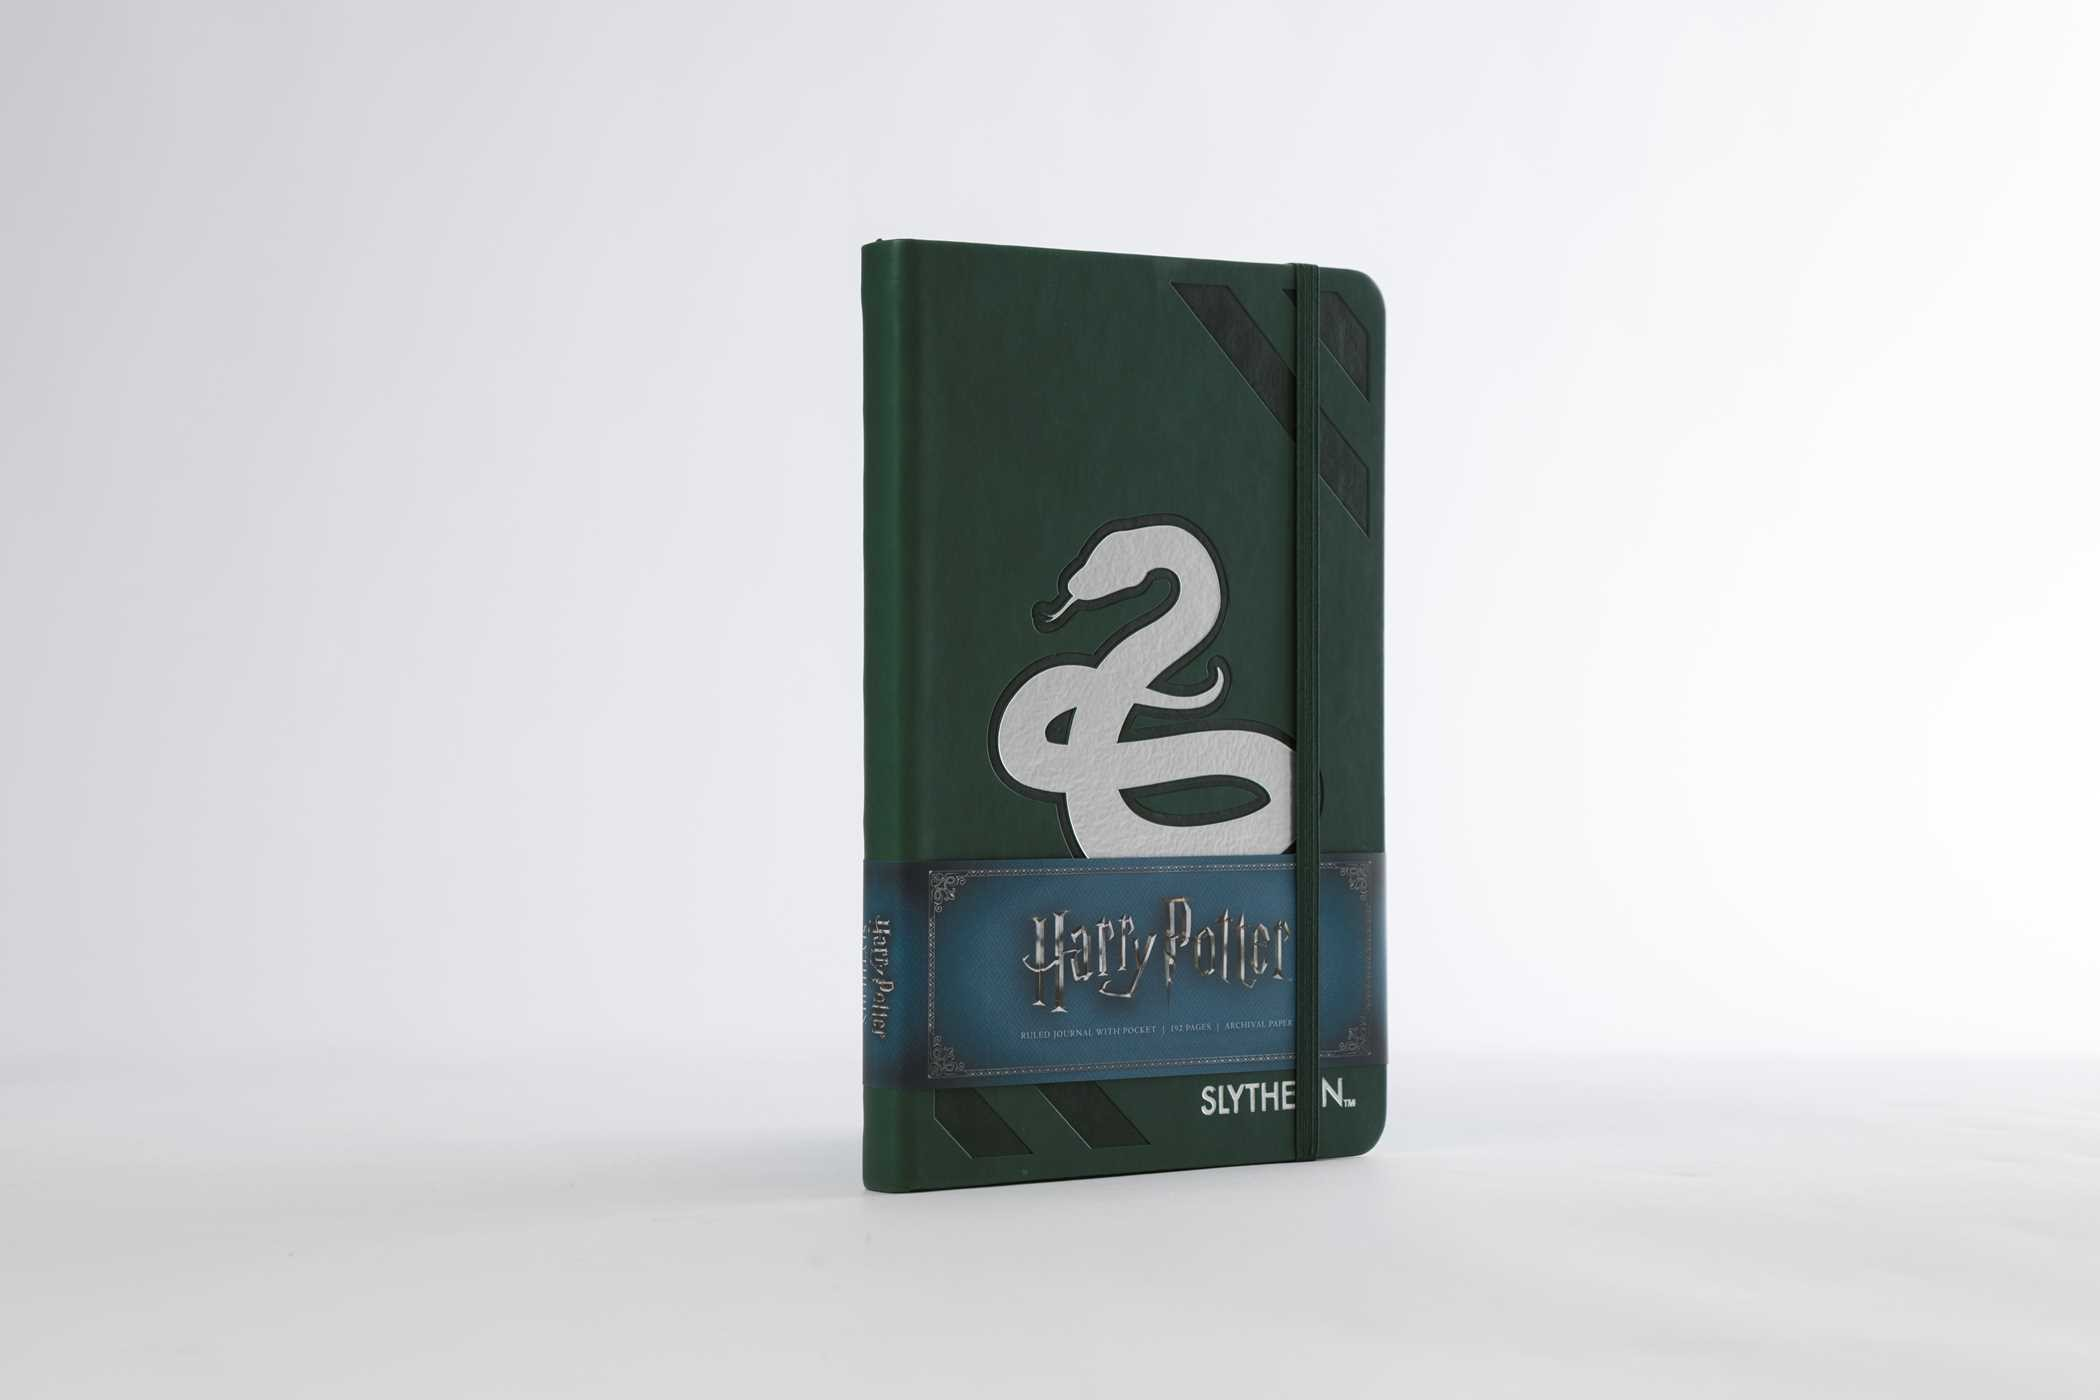 Harry potter slytherin hardcover ruled journal 9781683833185.in06